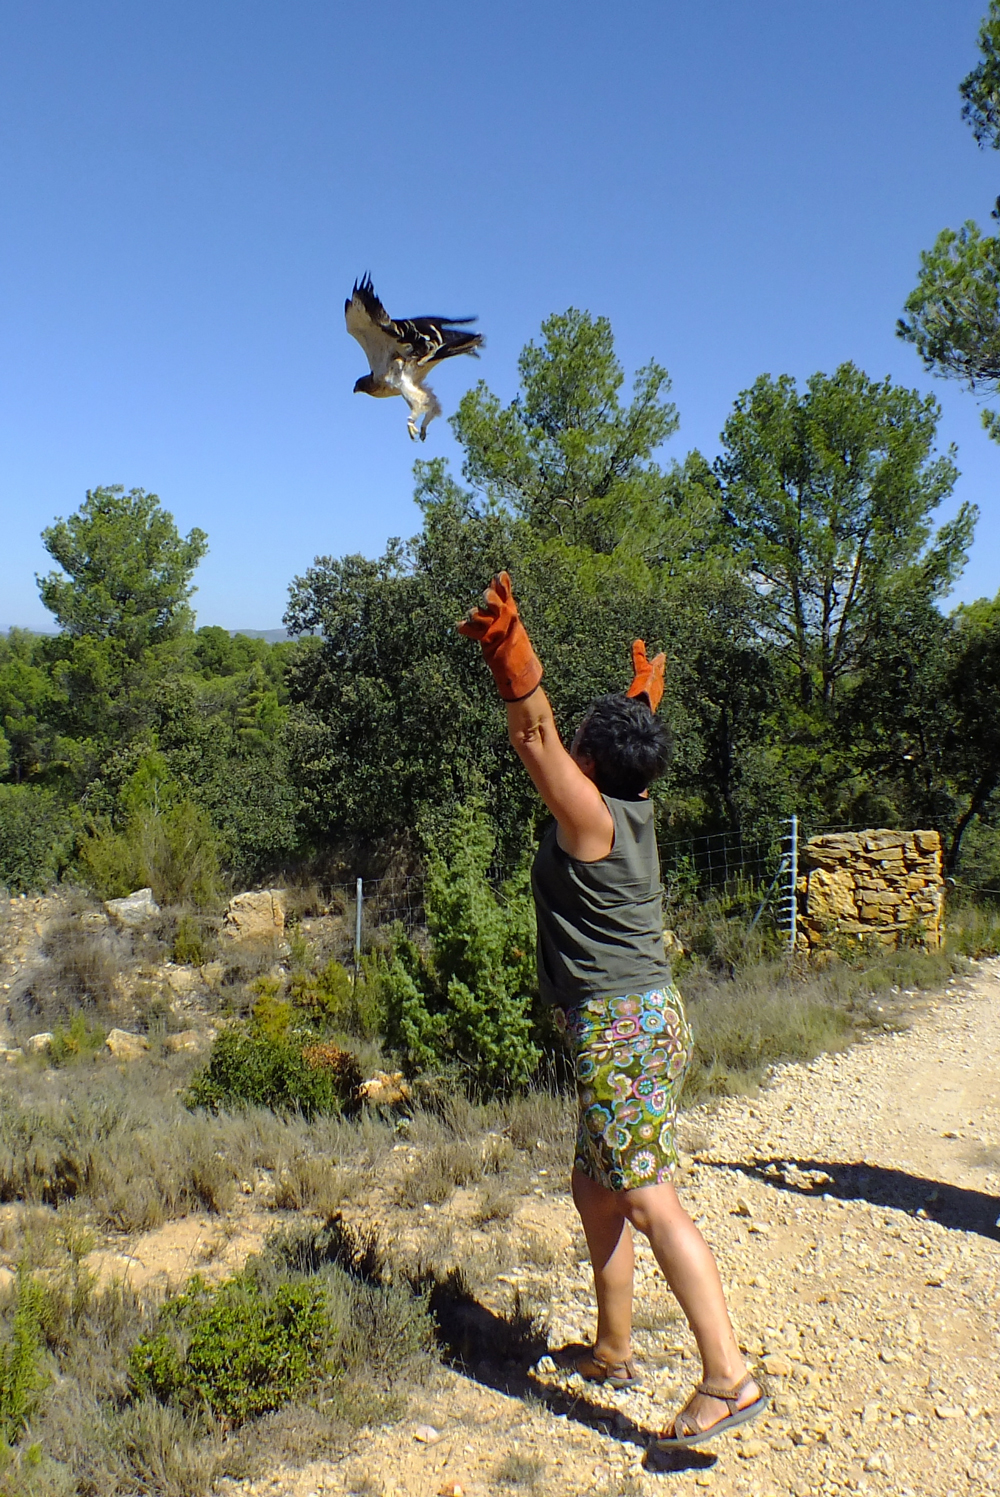 The moment of release for the Booted Eagle